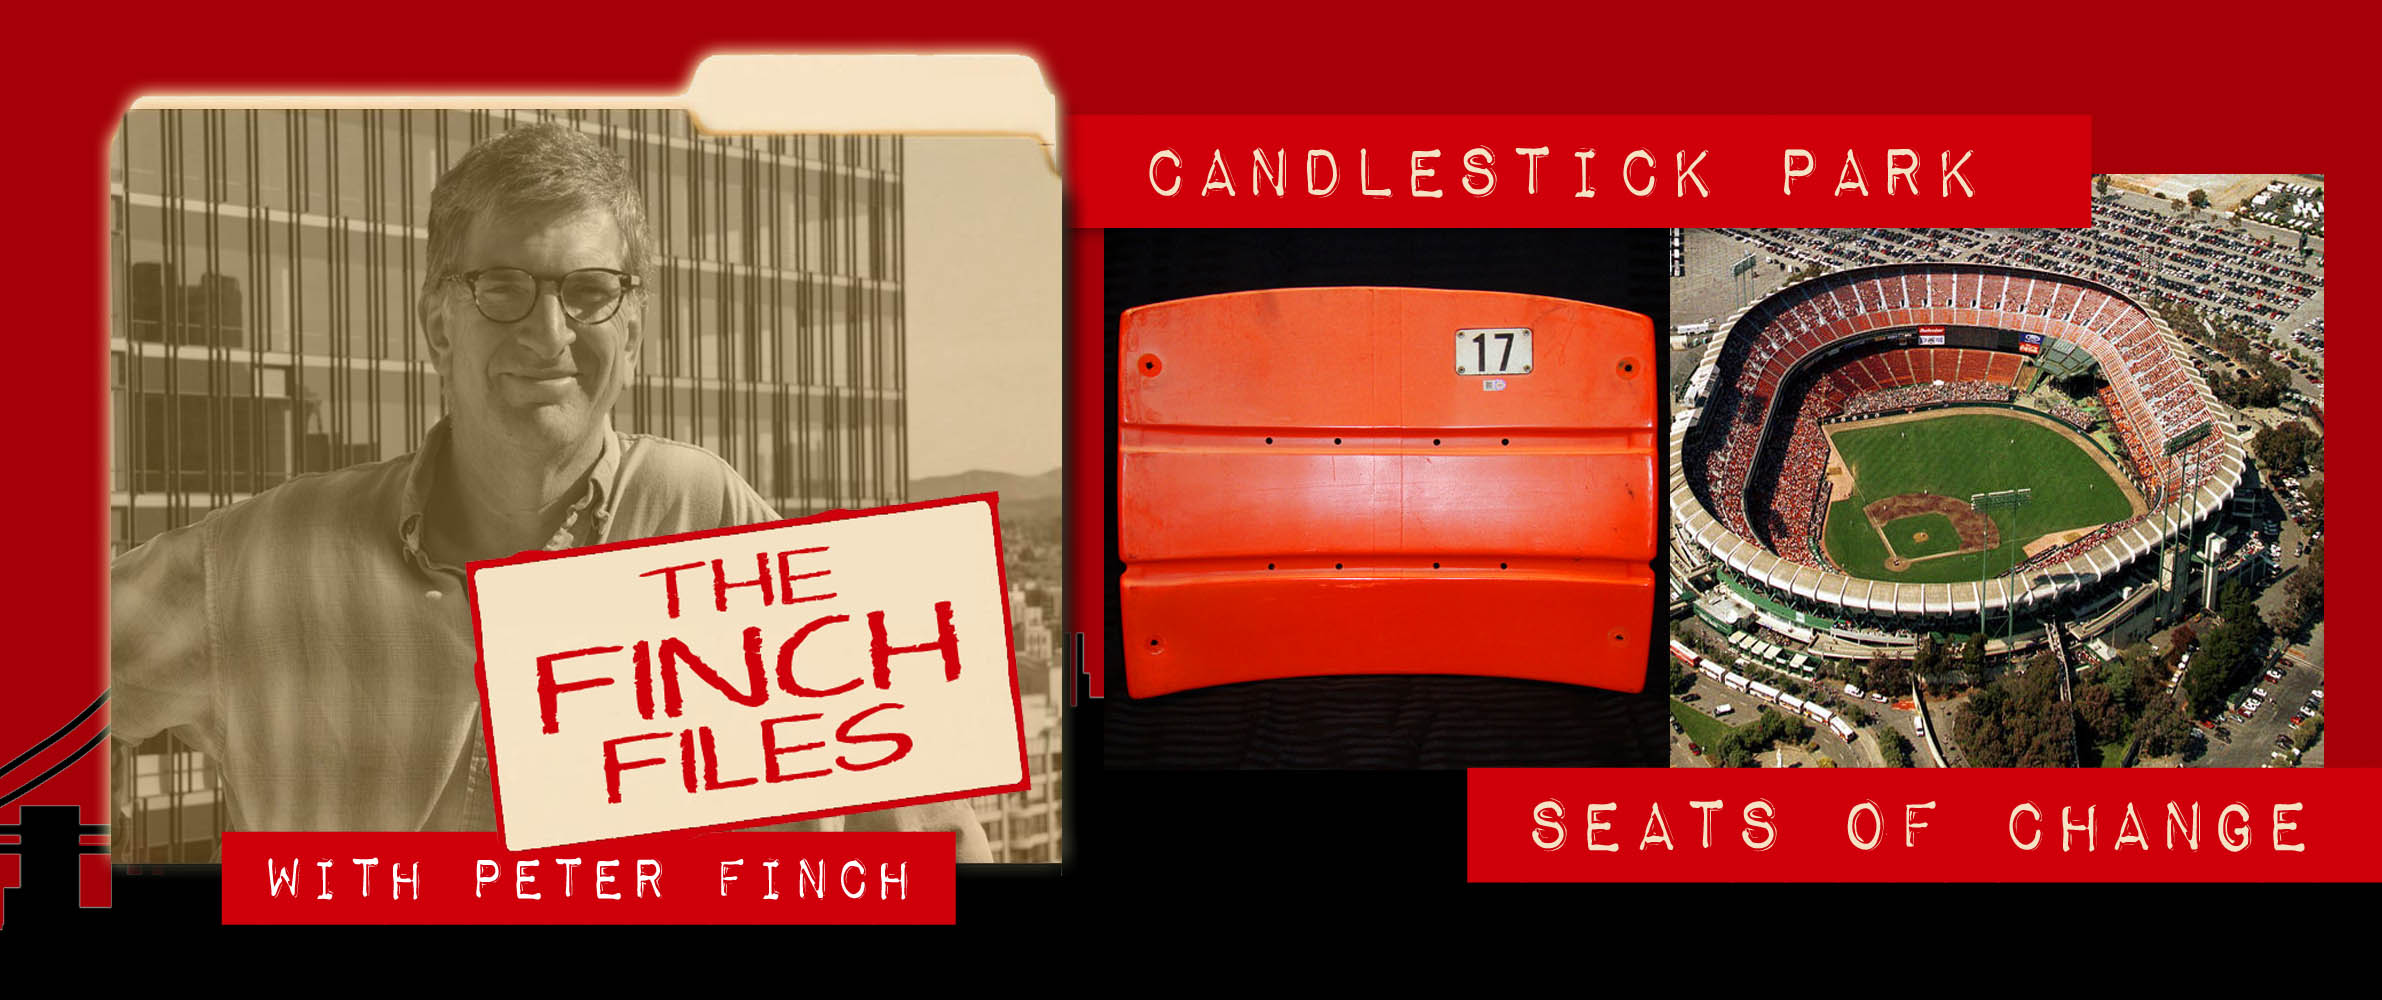 The Finch Files: Candlestick Park … Seats of Change